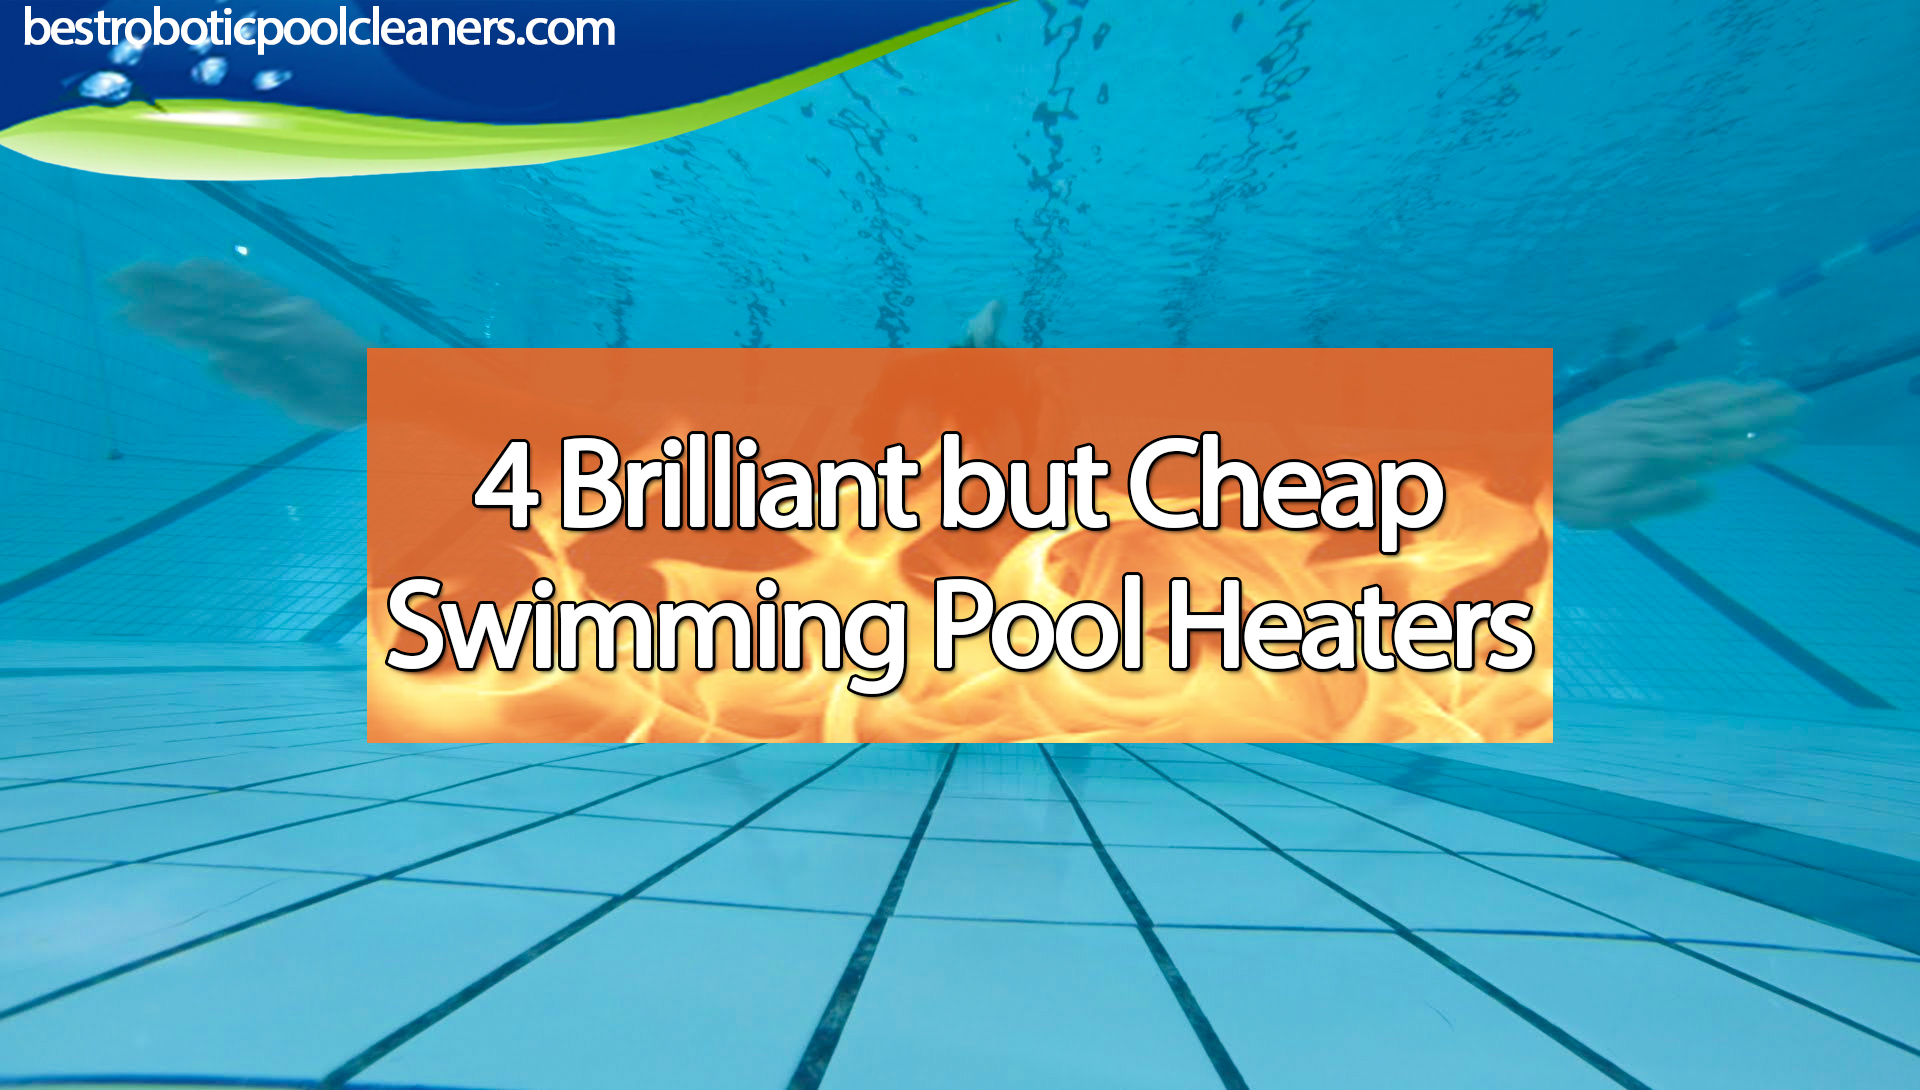 4 Brilliant but Cheap Swimming Pool Heaters - Best Robotic Pool Cleaners